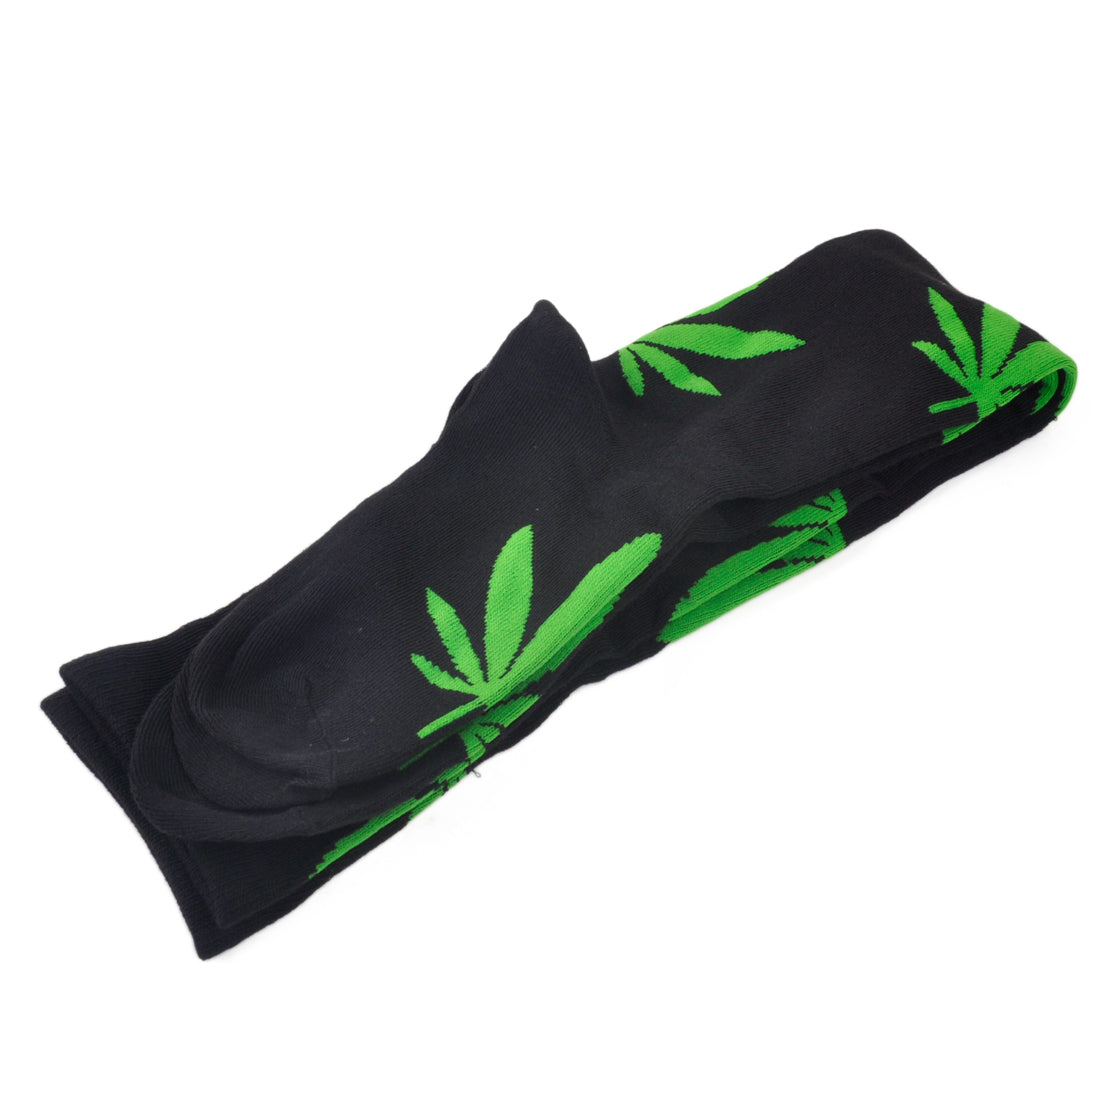 Thigh High Socks - Black with Green Leaves